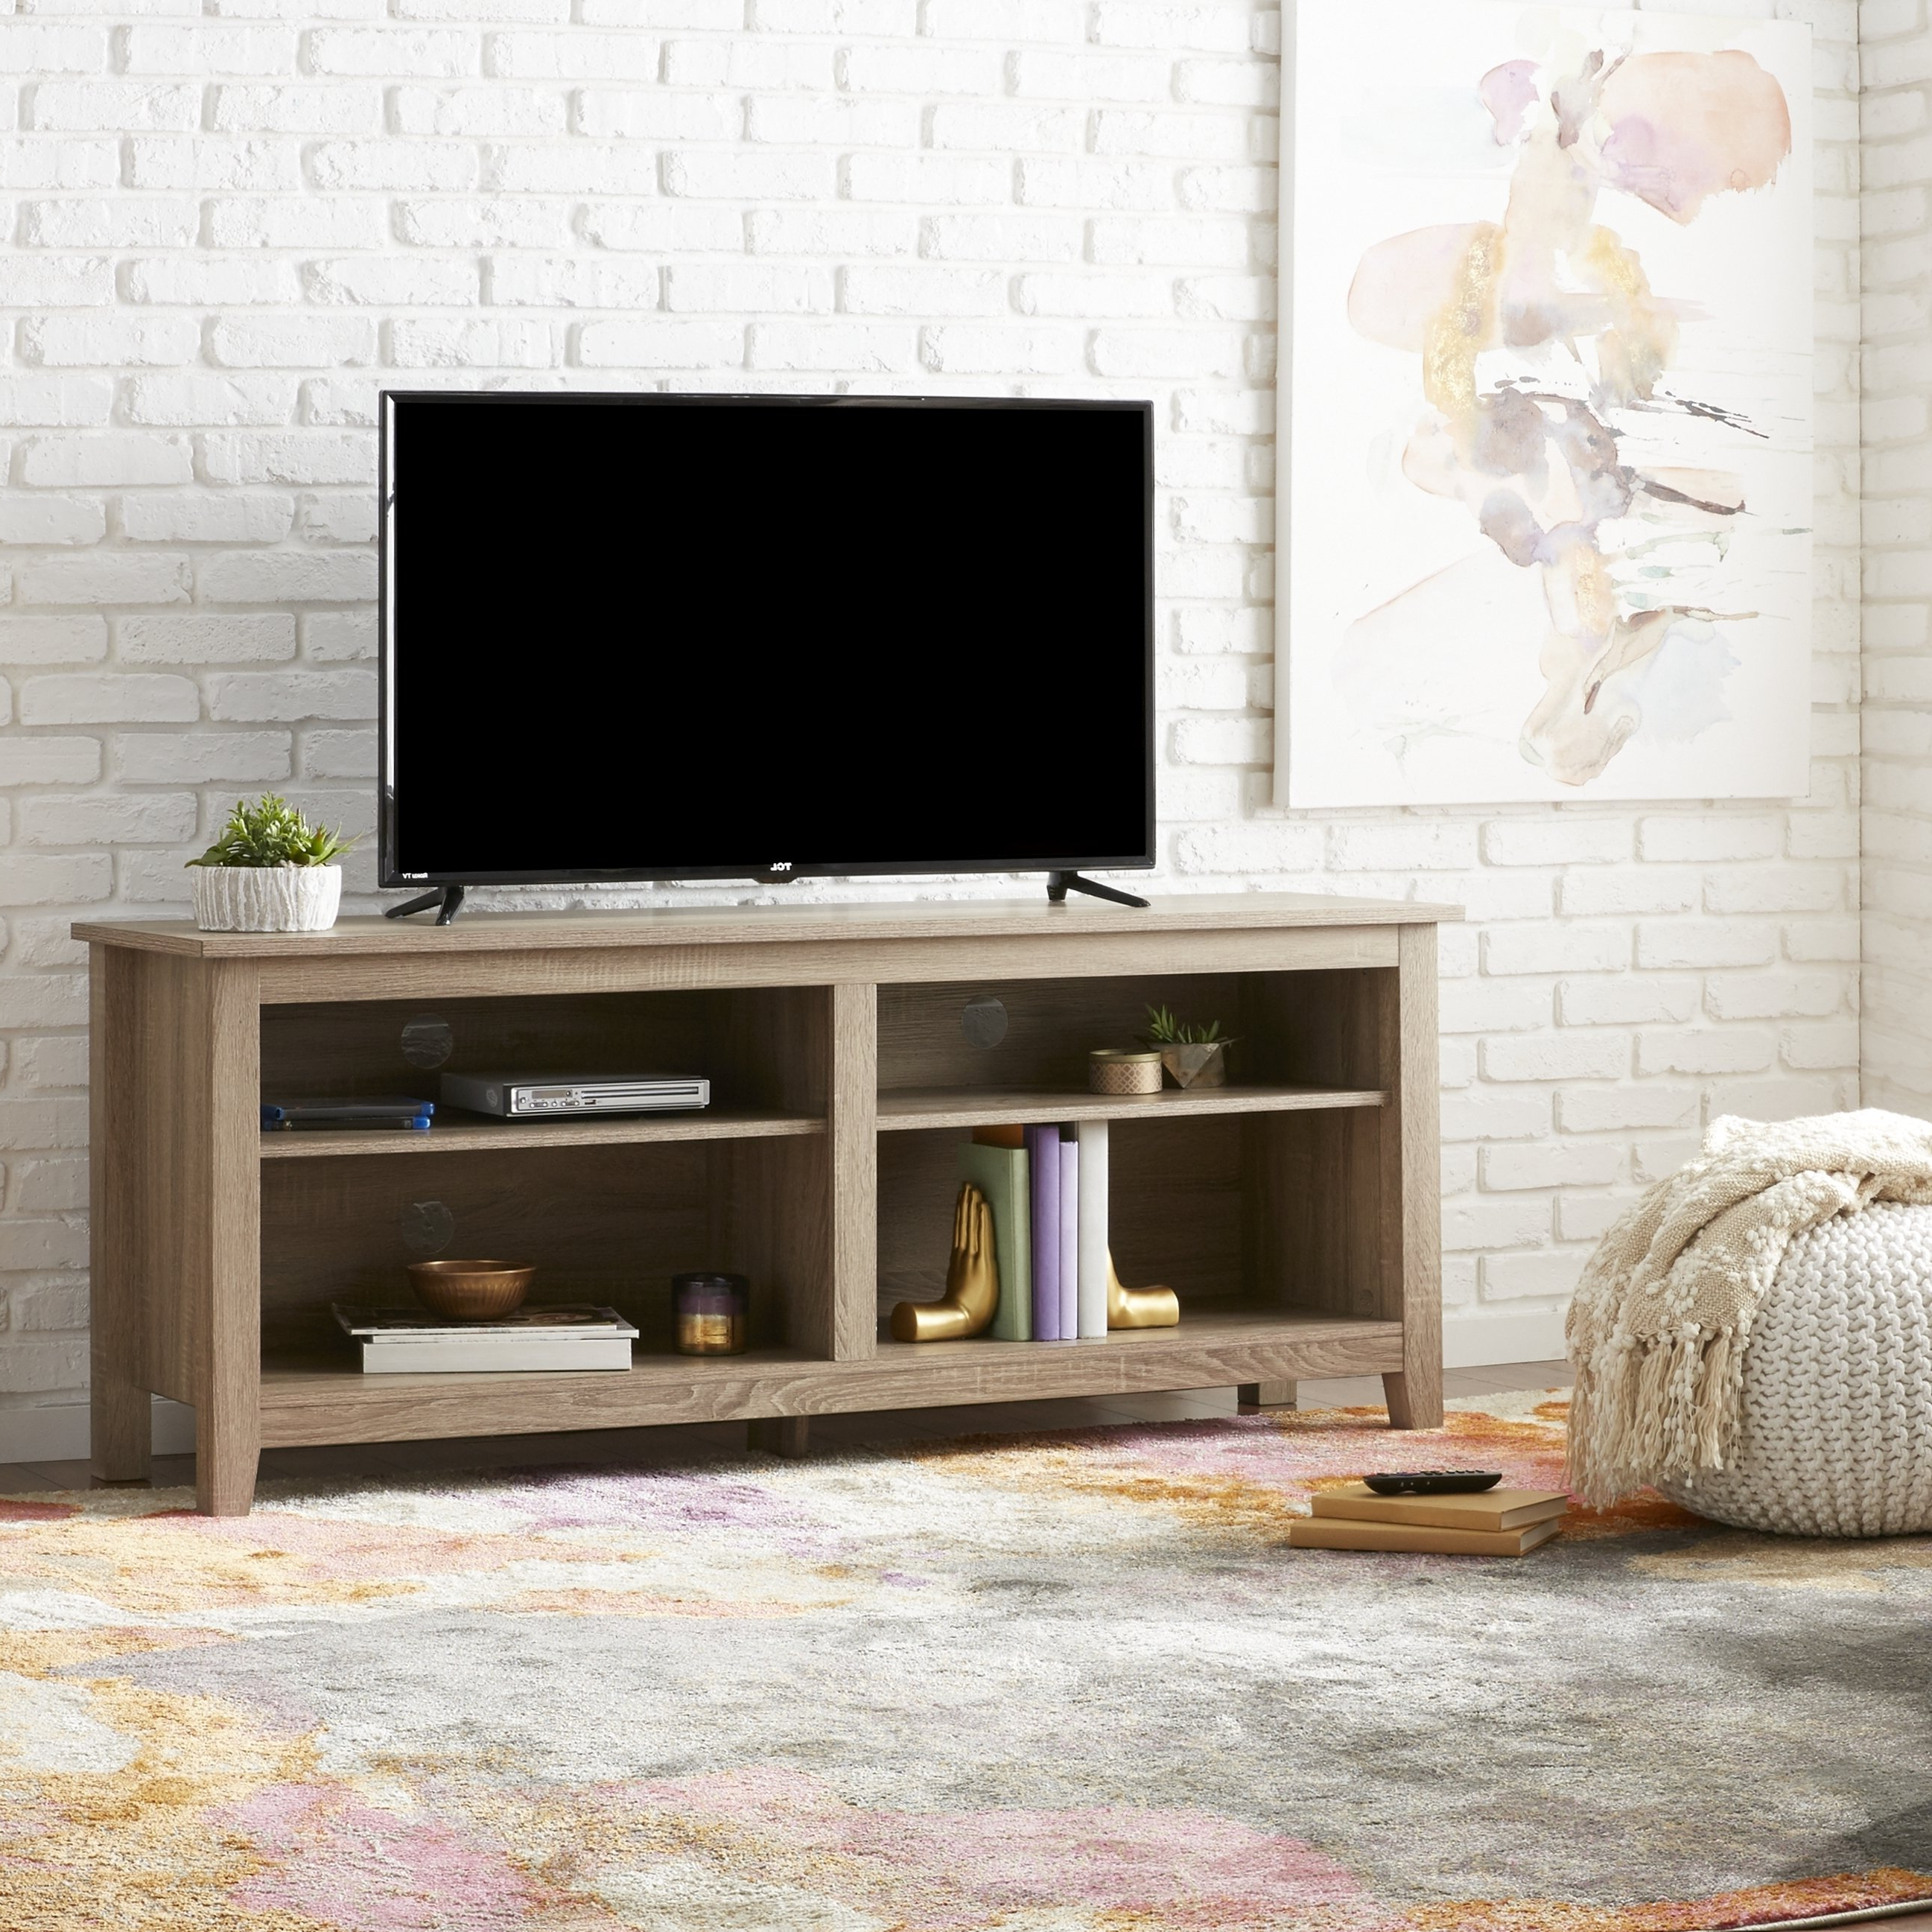 Shop 58 Inch Driftwood Tv Stand – Free Shipping On Orders Over $45 Intended For Abbot 60 Inch Tv Stands (Gallery 4 of 20)